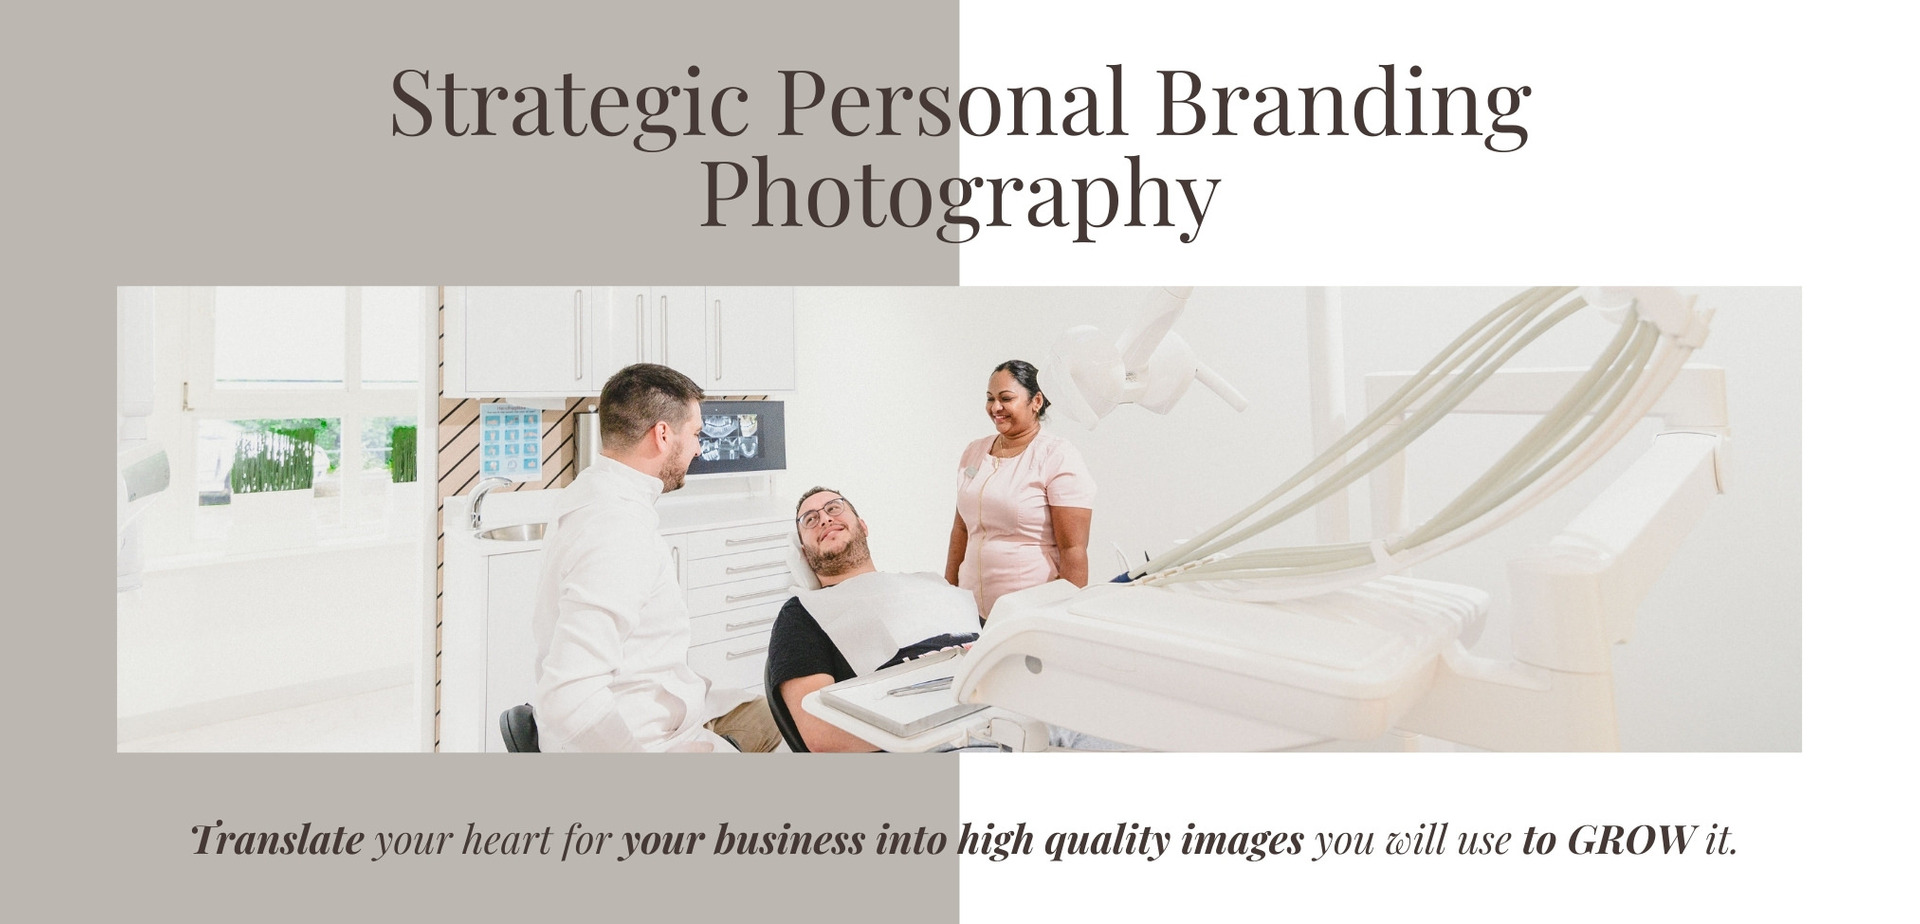 Strategic Personal Branding Photography in Amsterdam. Translate your heart for your business into high quality images you will use to grow it.